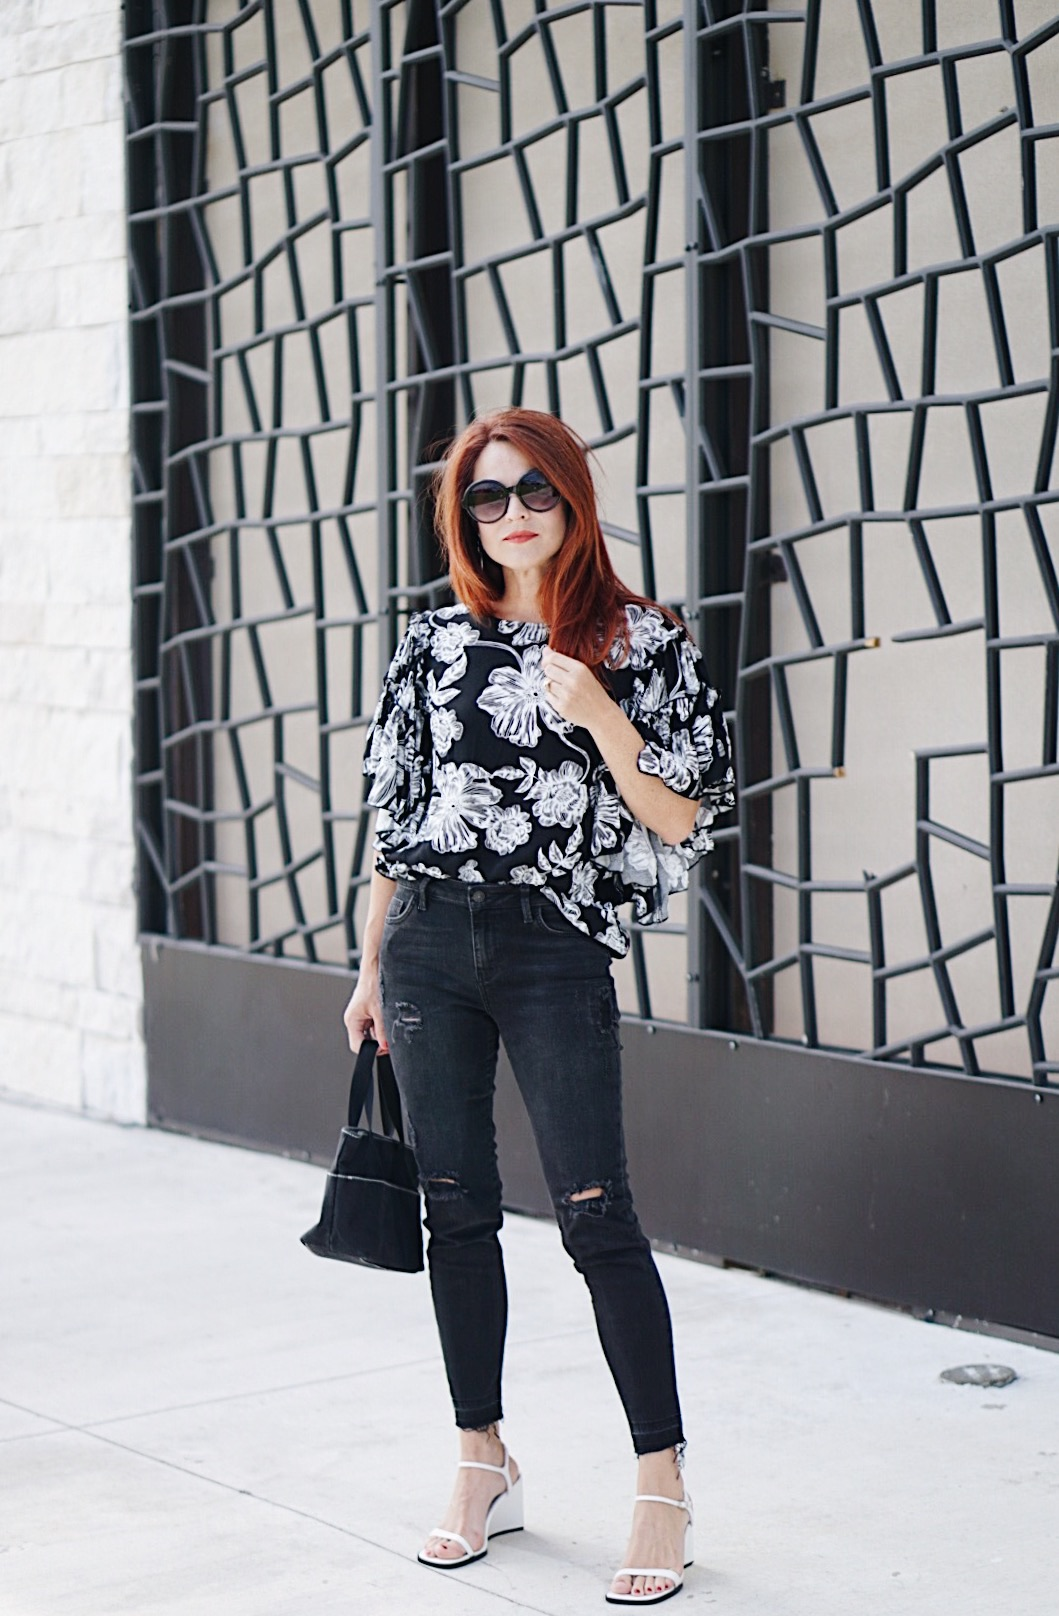 who what wear, target style, ruffle sleeves, floral blouse, black skinny jeans, zara jeans, canvas bag, white sandals, red hair